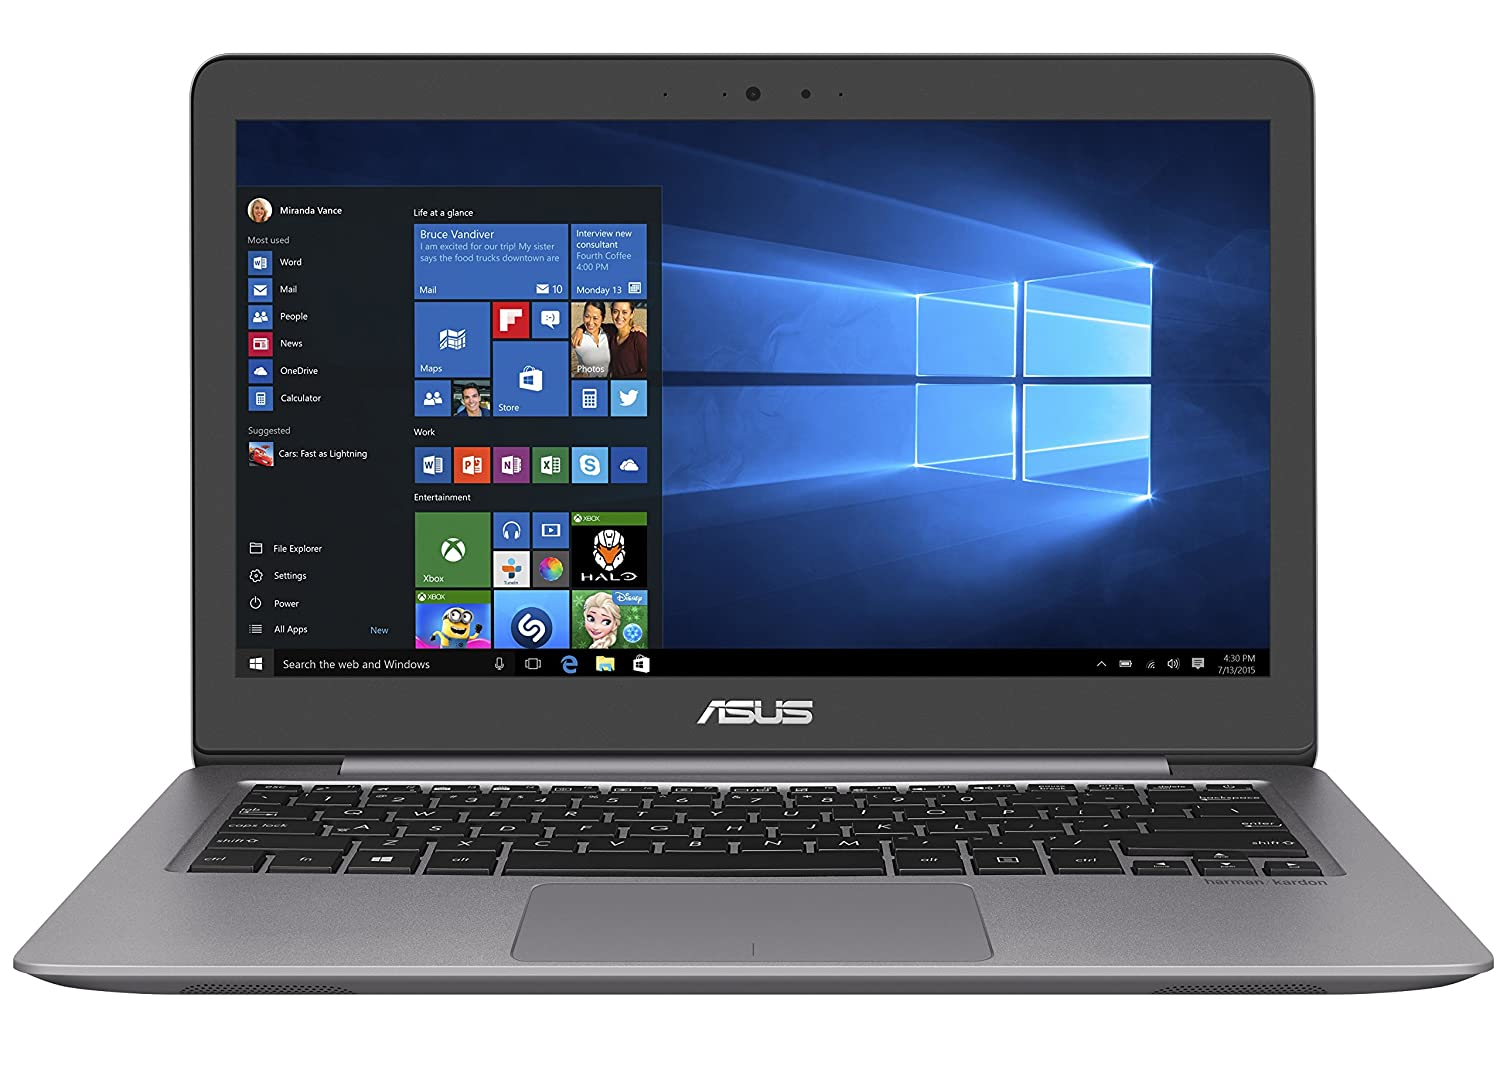 Asus Zenbook amazon